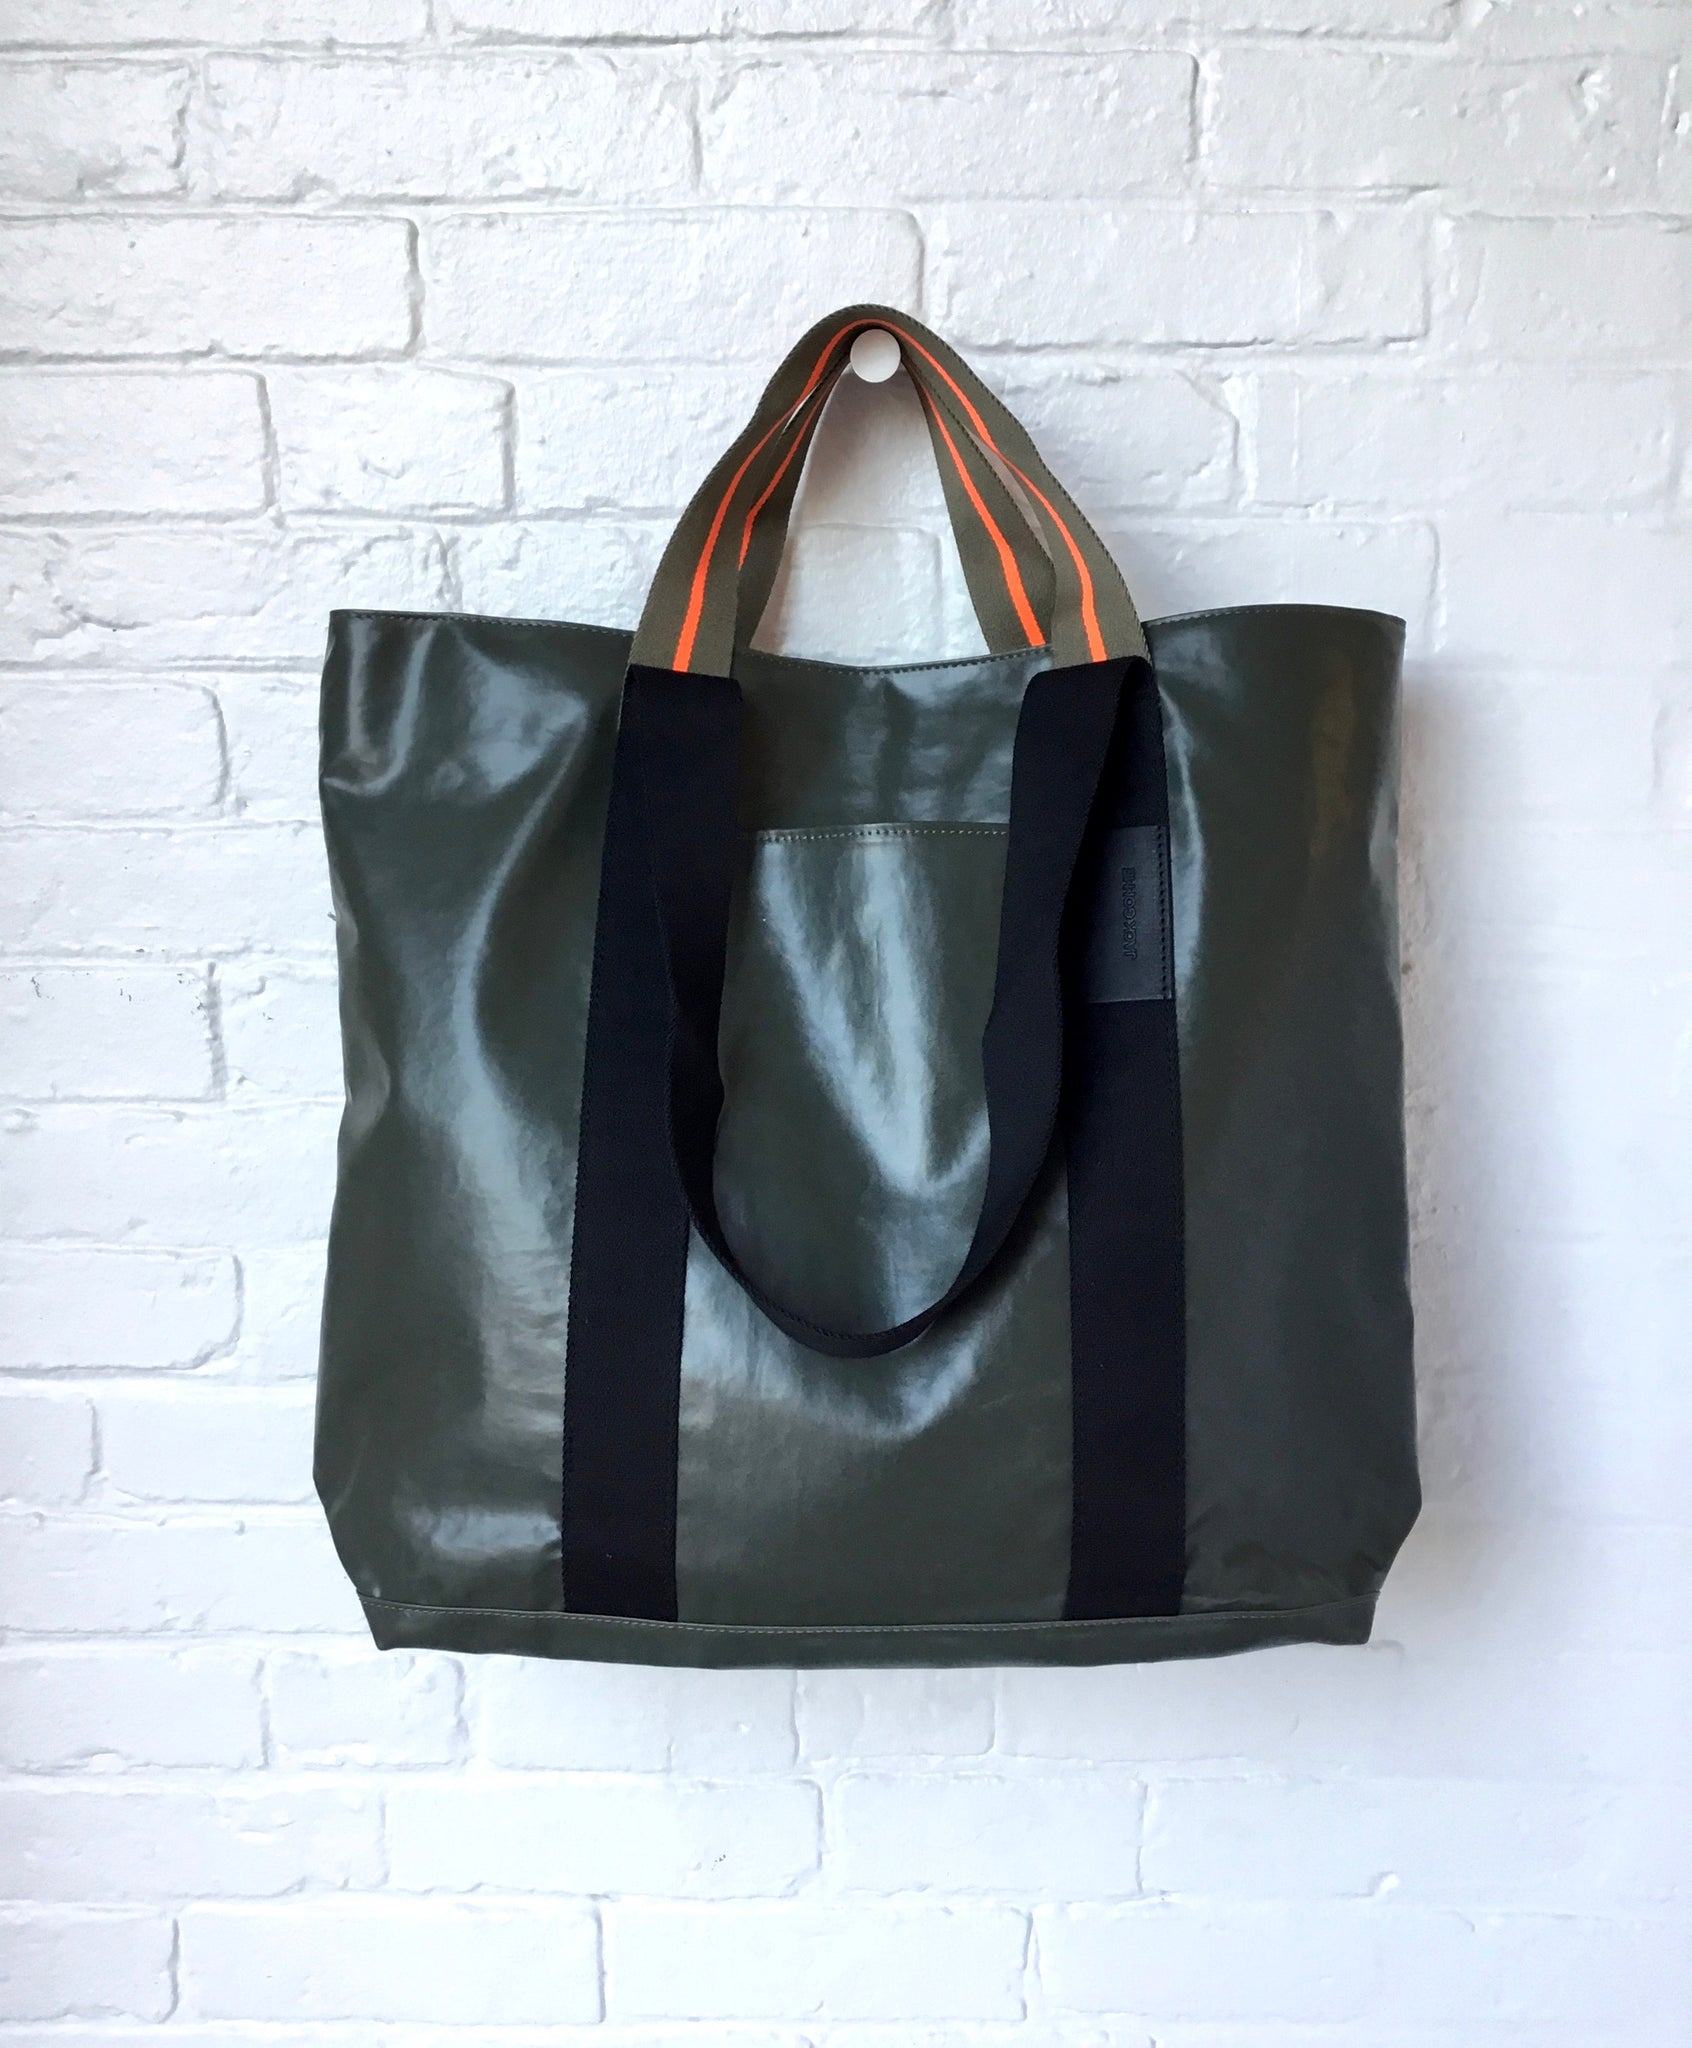 Jack Gomme Calvi Tote in Army Green